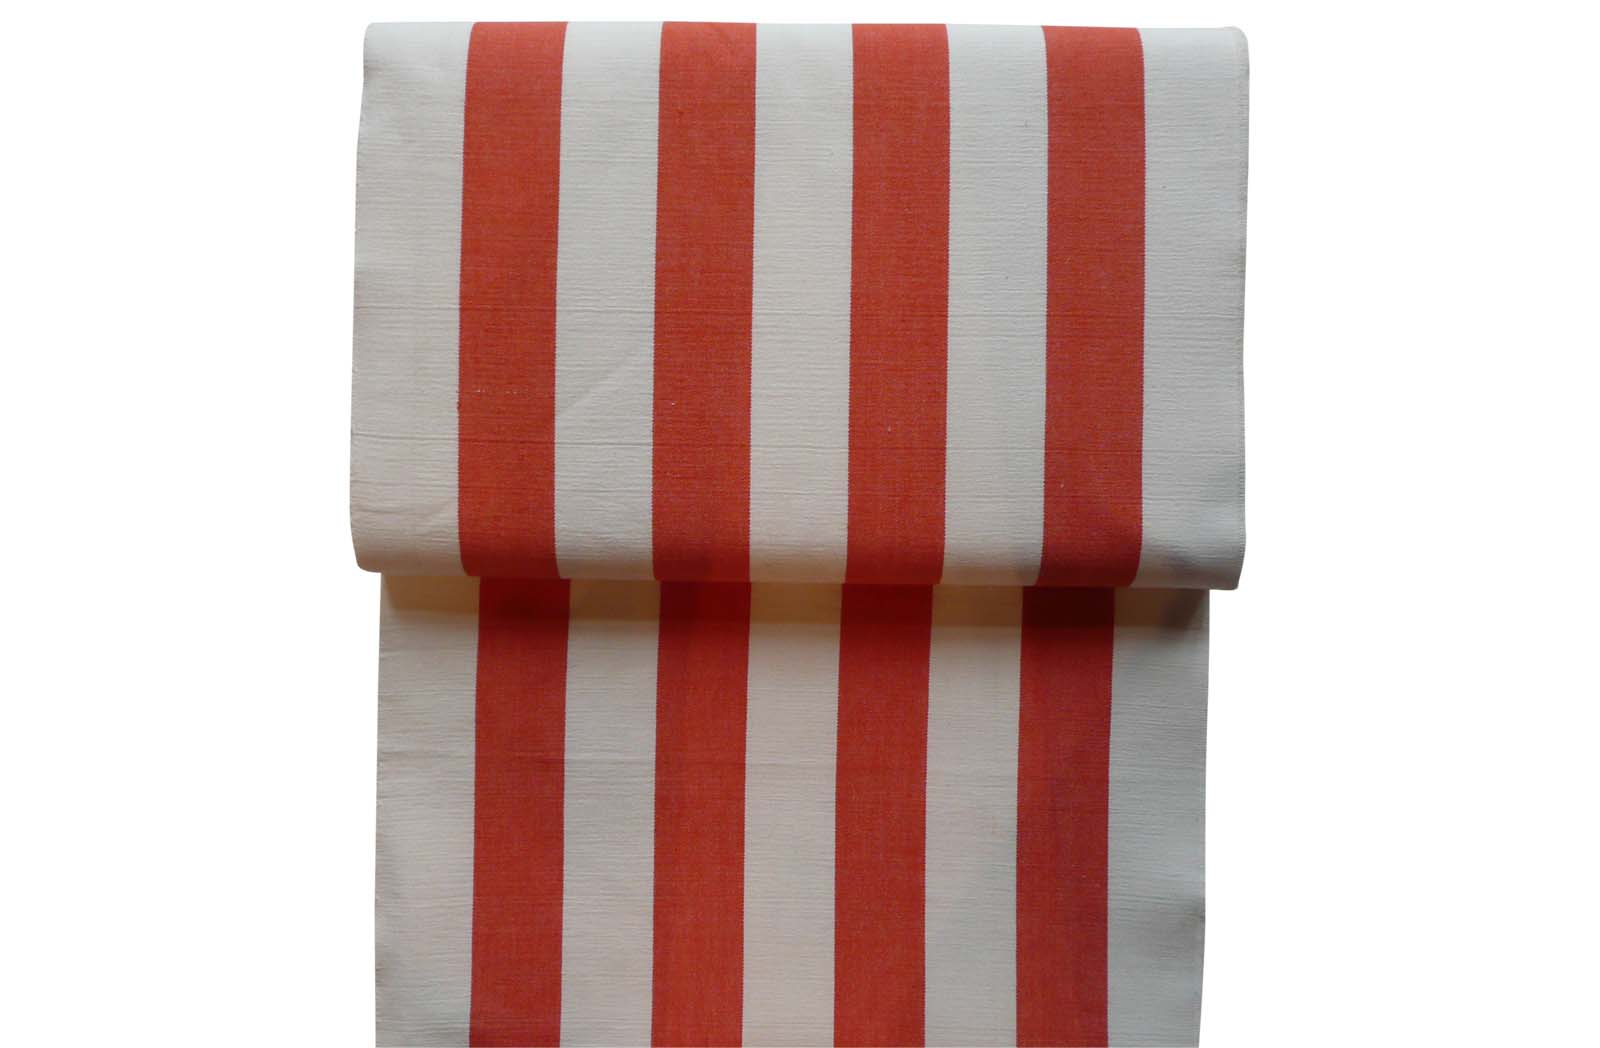 Astonishing Orange And White Stripe Replacement Directors Chair Covers Pdpeps Interior Chair Design Pdpepsorg